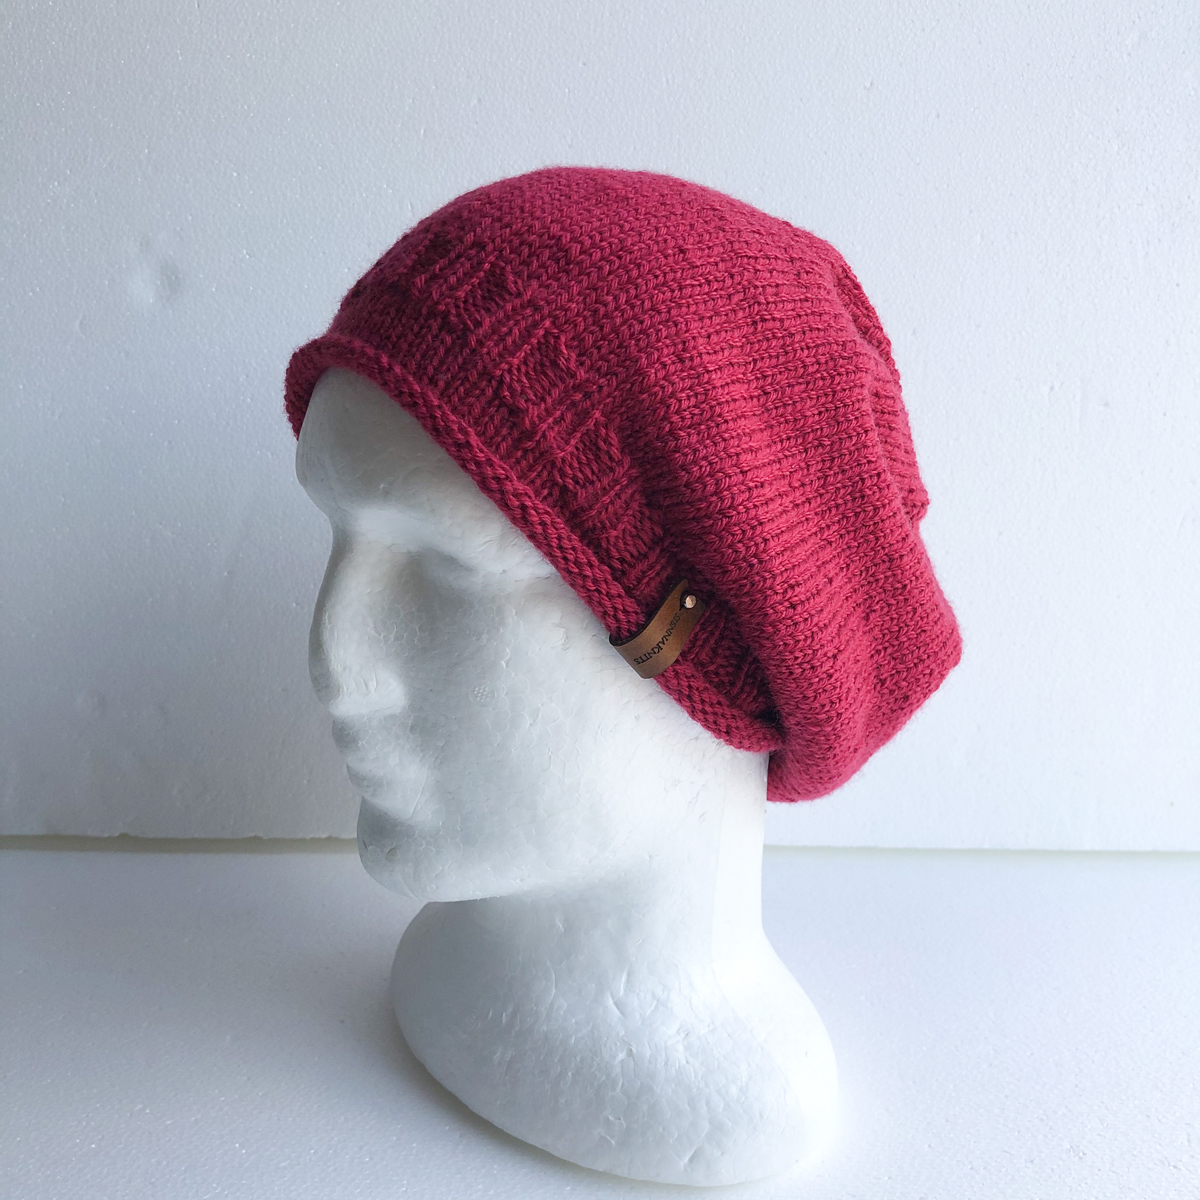 100 % Wool Cherry Pink Knit Women Slouchy Beanie With Roll Up Brim By SiennaKnits